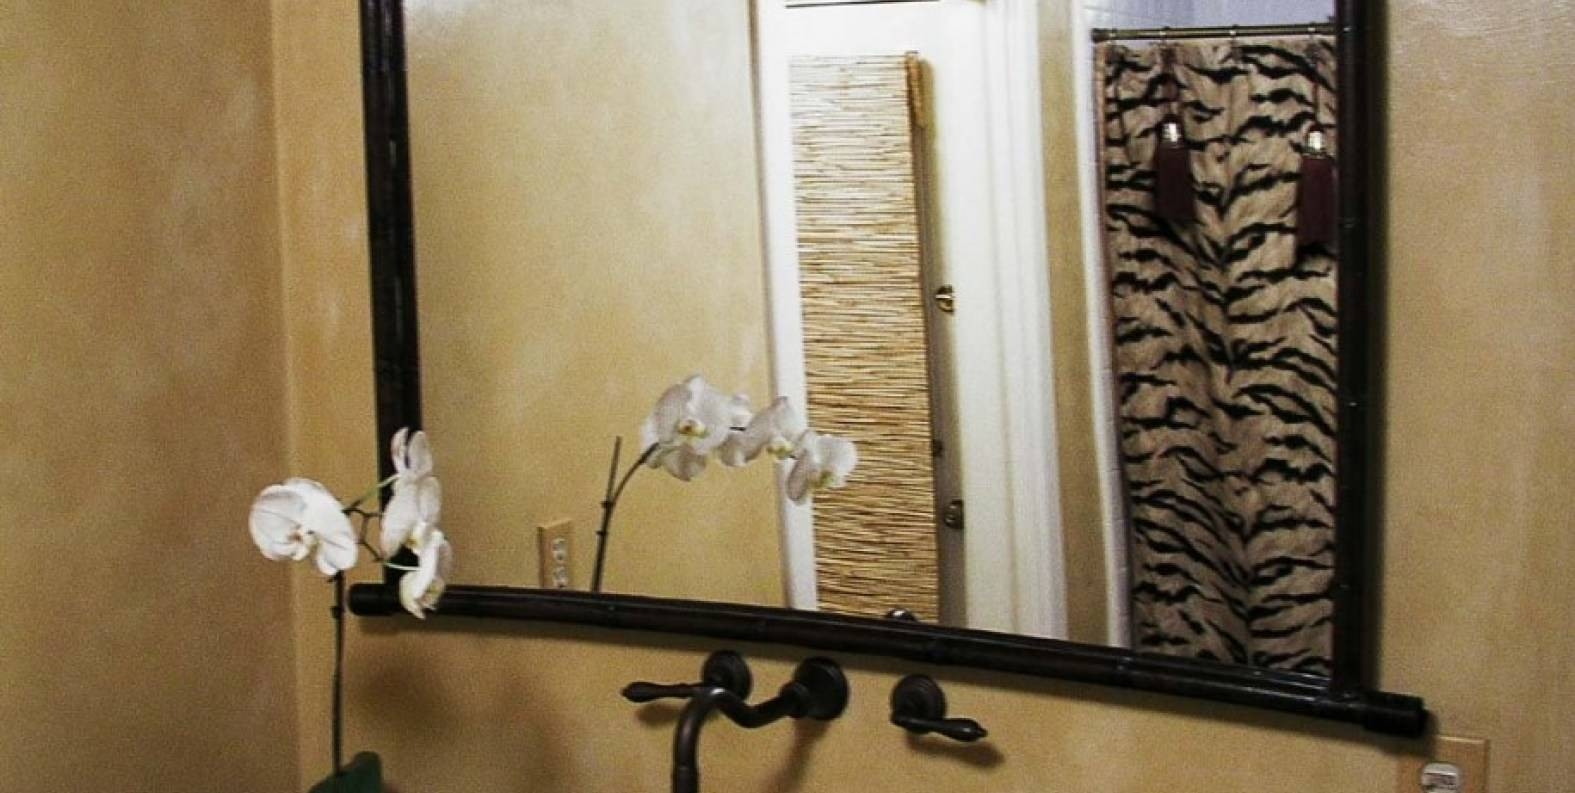 Mirror : Valuable Black Faux Leather Framed Mirror Breathtaking Within Black Leather Framed Mirrors (View 6 of 15)